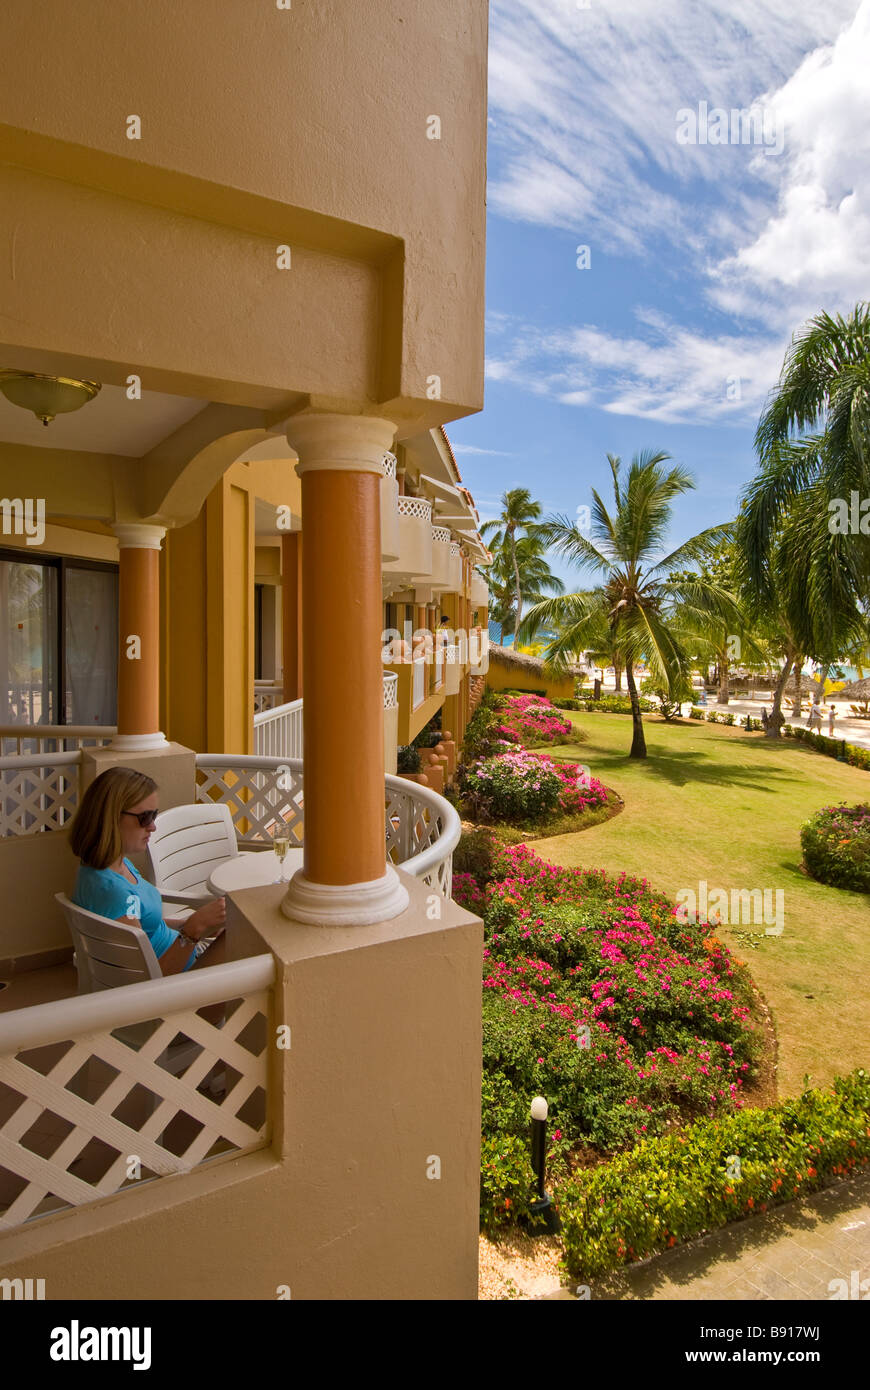 Wyndham Hotel Stock Photos & Wyndham Hotel Stock Images - Alamy